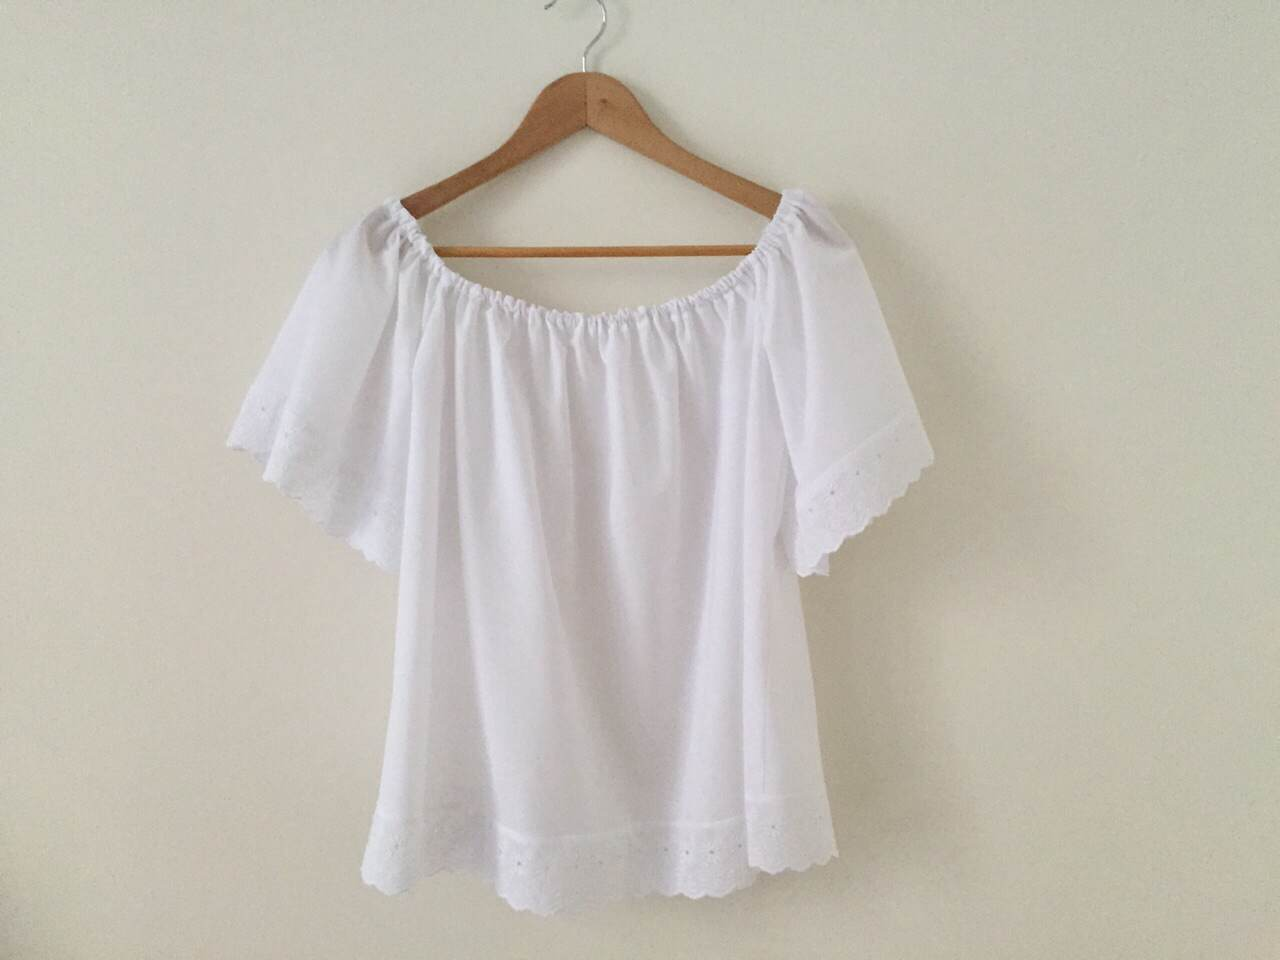 DIY Ropa: Blusa sin hombros (patrones gratis) - Handbox Craft Lovers ...